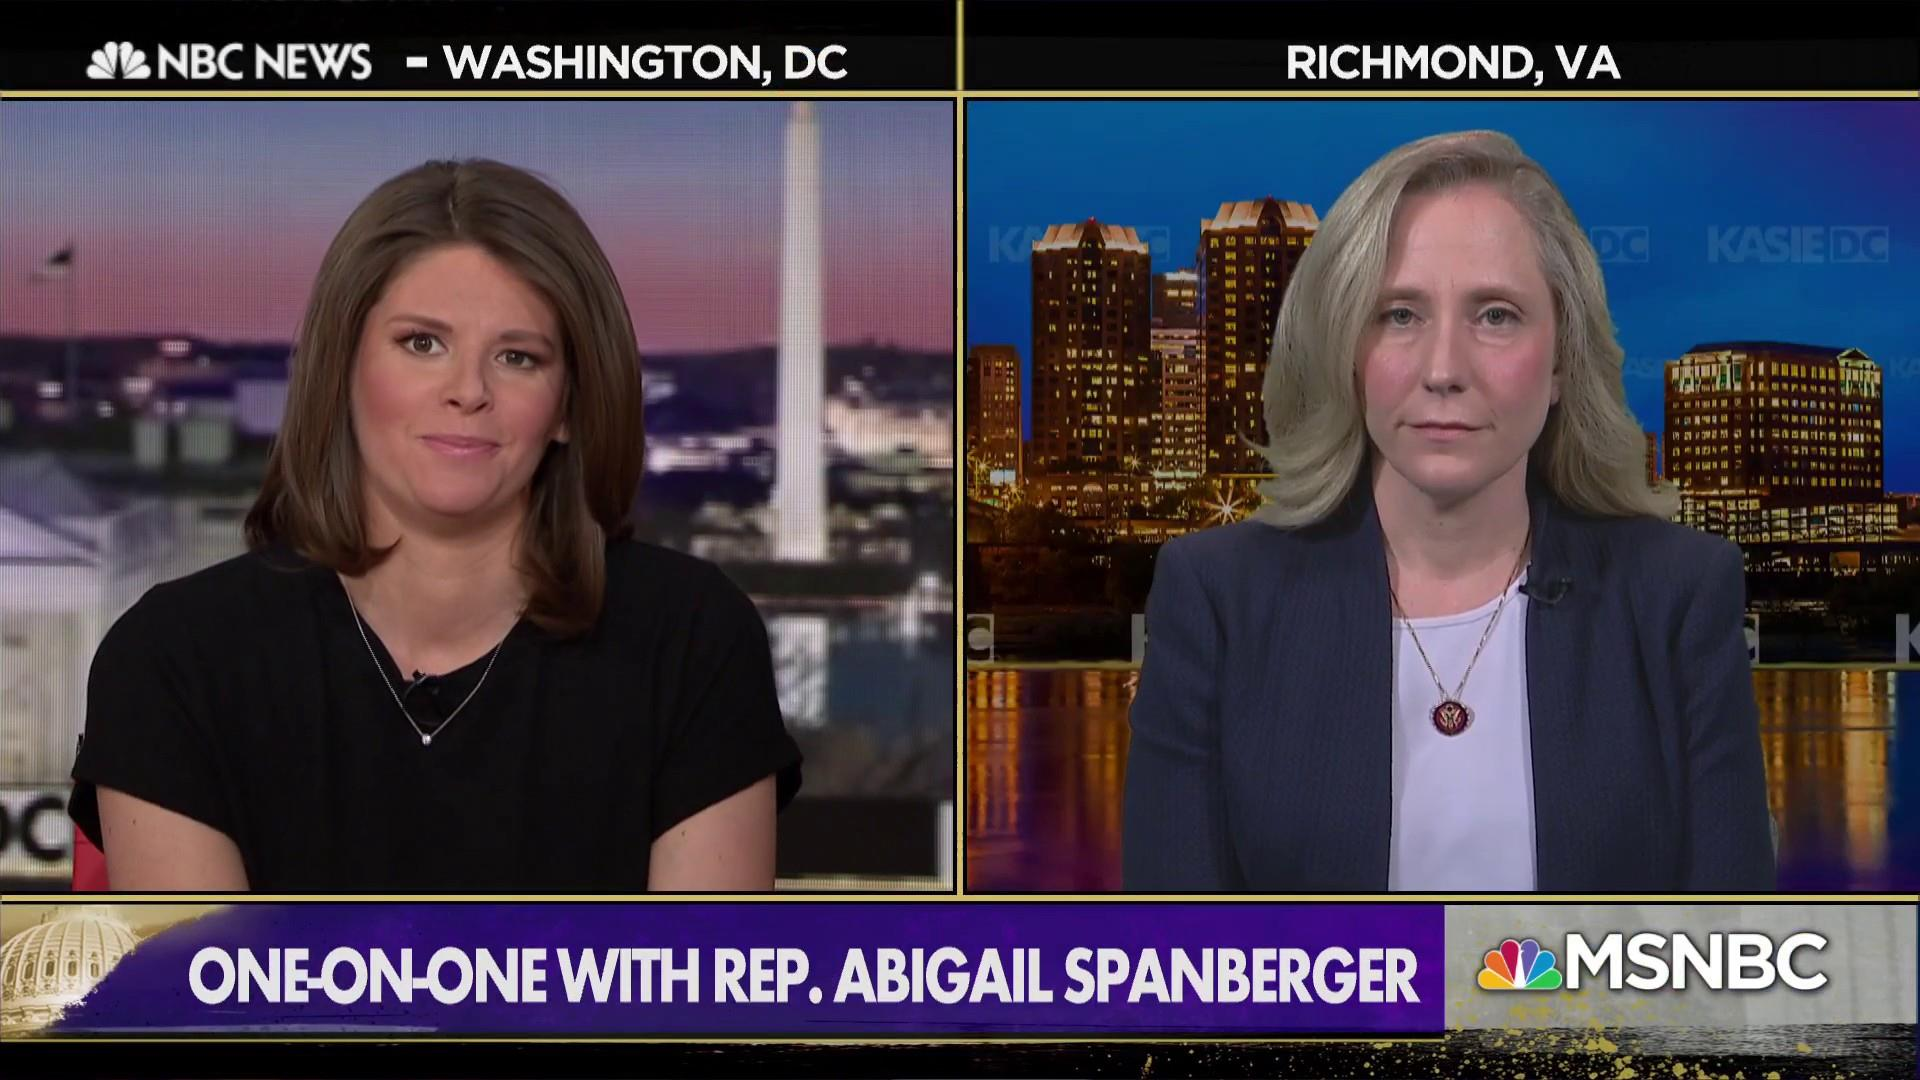 Rep. Spanberger: 'We need more answers' before impeachment proceedings